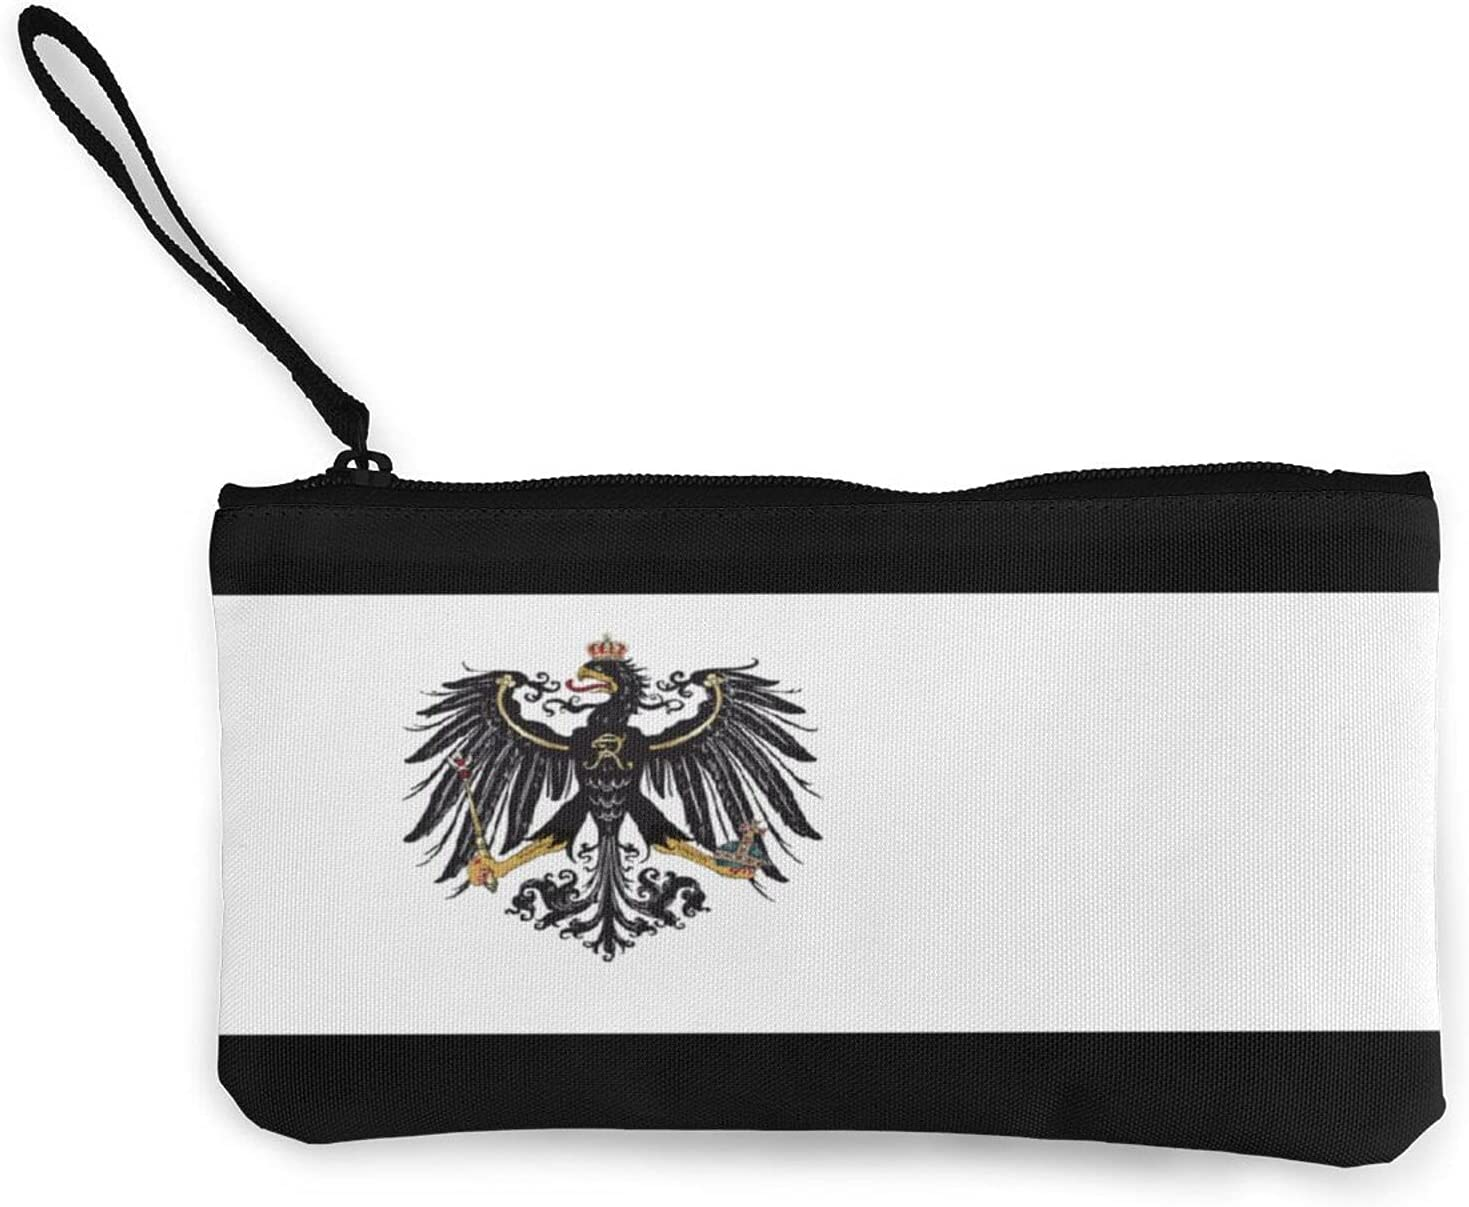 Flag Of The Kingdom Of Prussia Multifunction Travel Toiletry Pouch Small Canvas Coin Wallet Bag Zipper